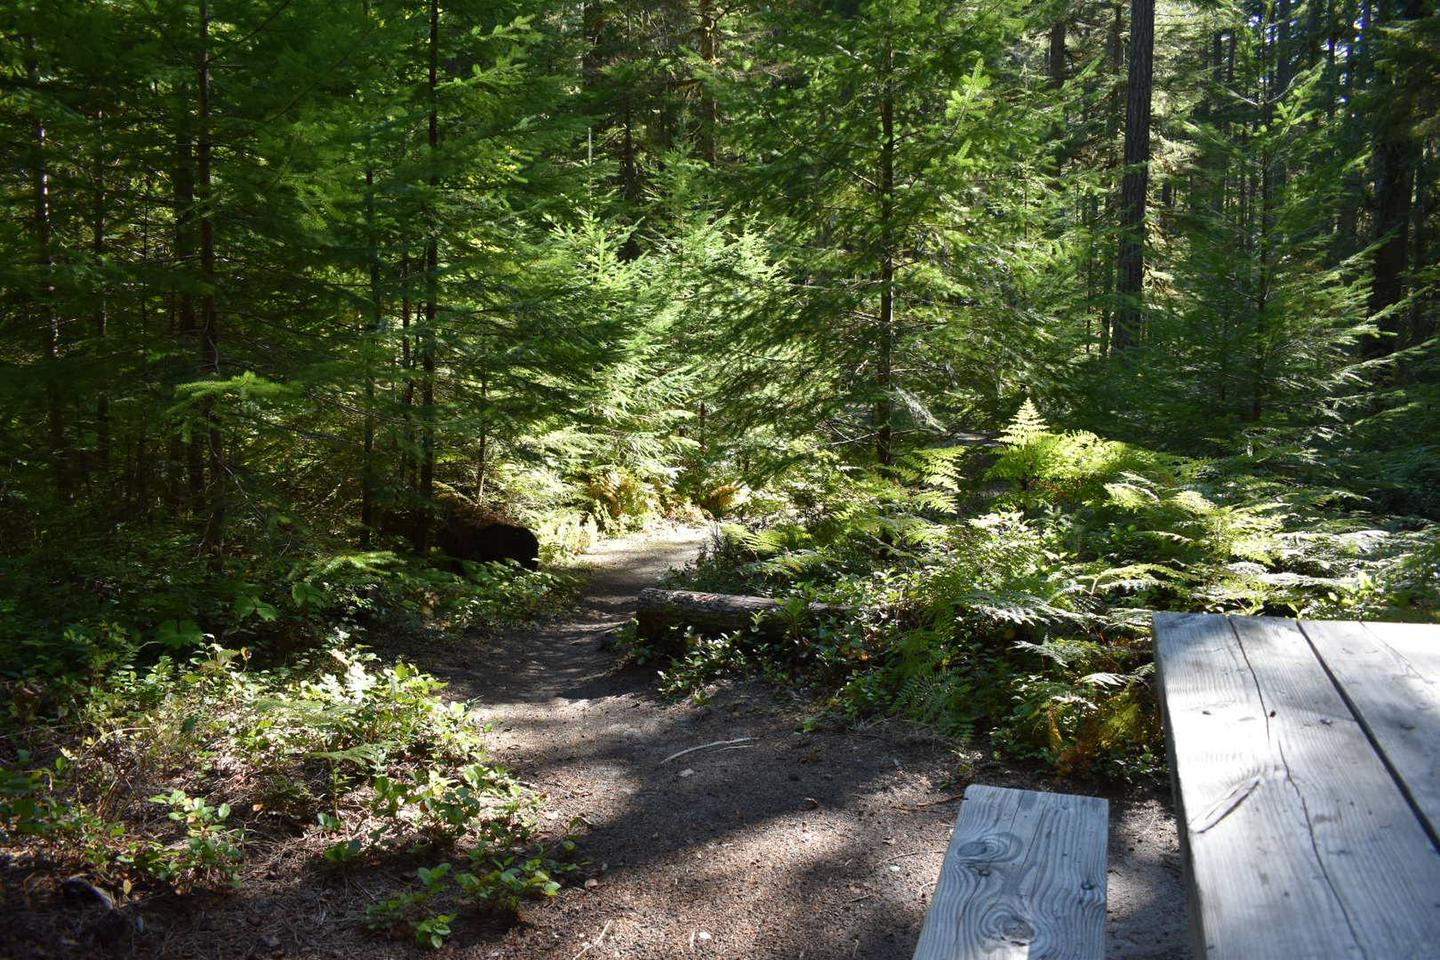 A view of the path leading back to the parking area from the campsite.